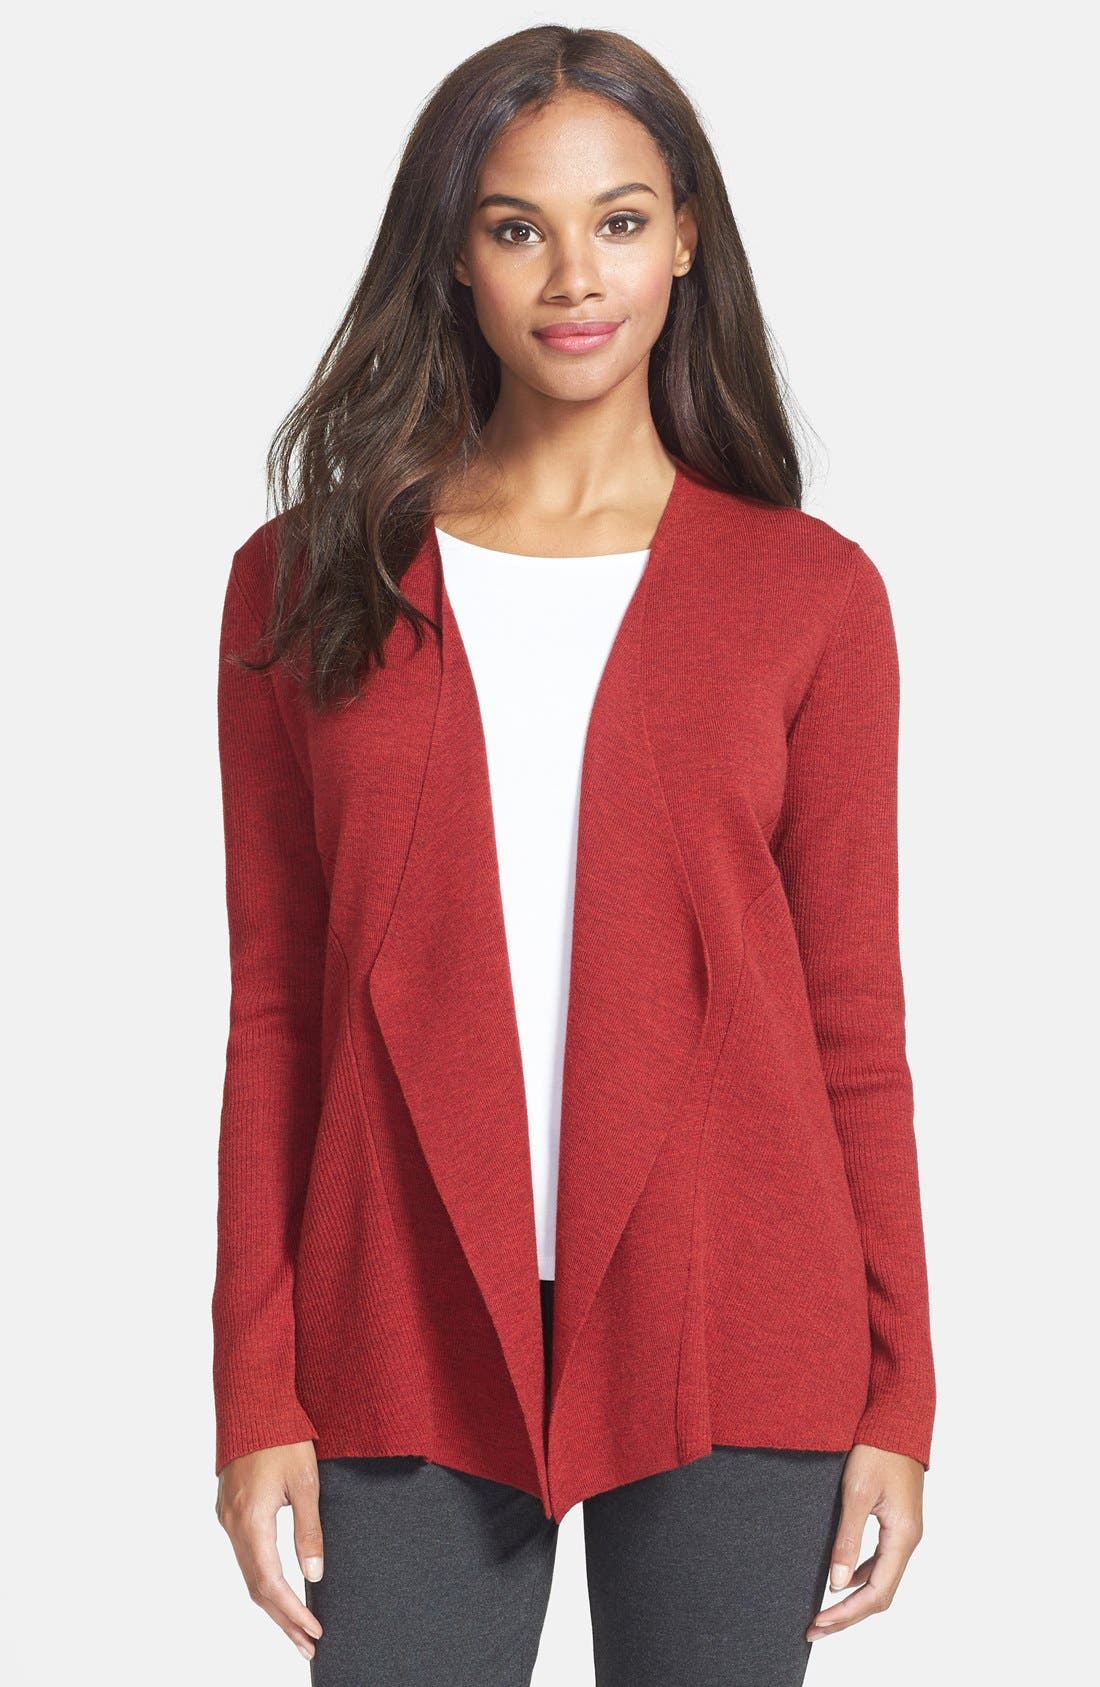 Main Image - Eileen Fisher Angled Front Shaped Cardigan (Regular & Petite)